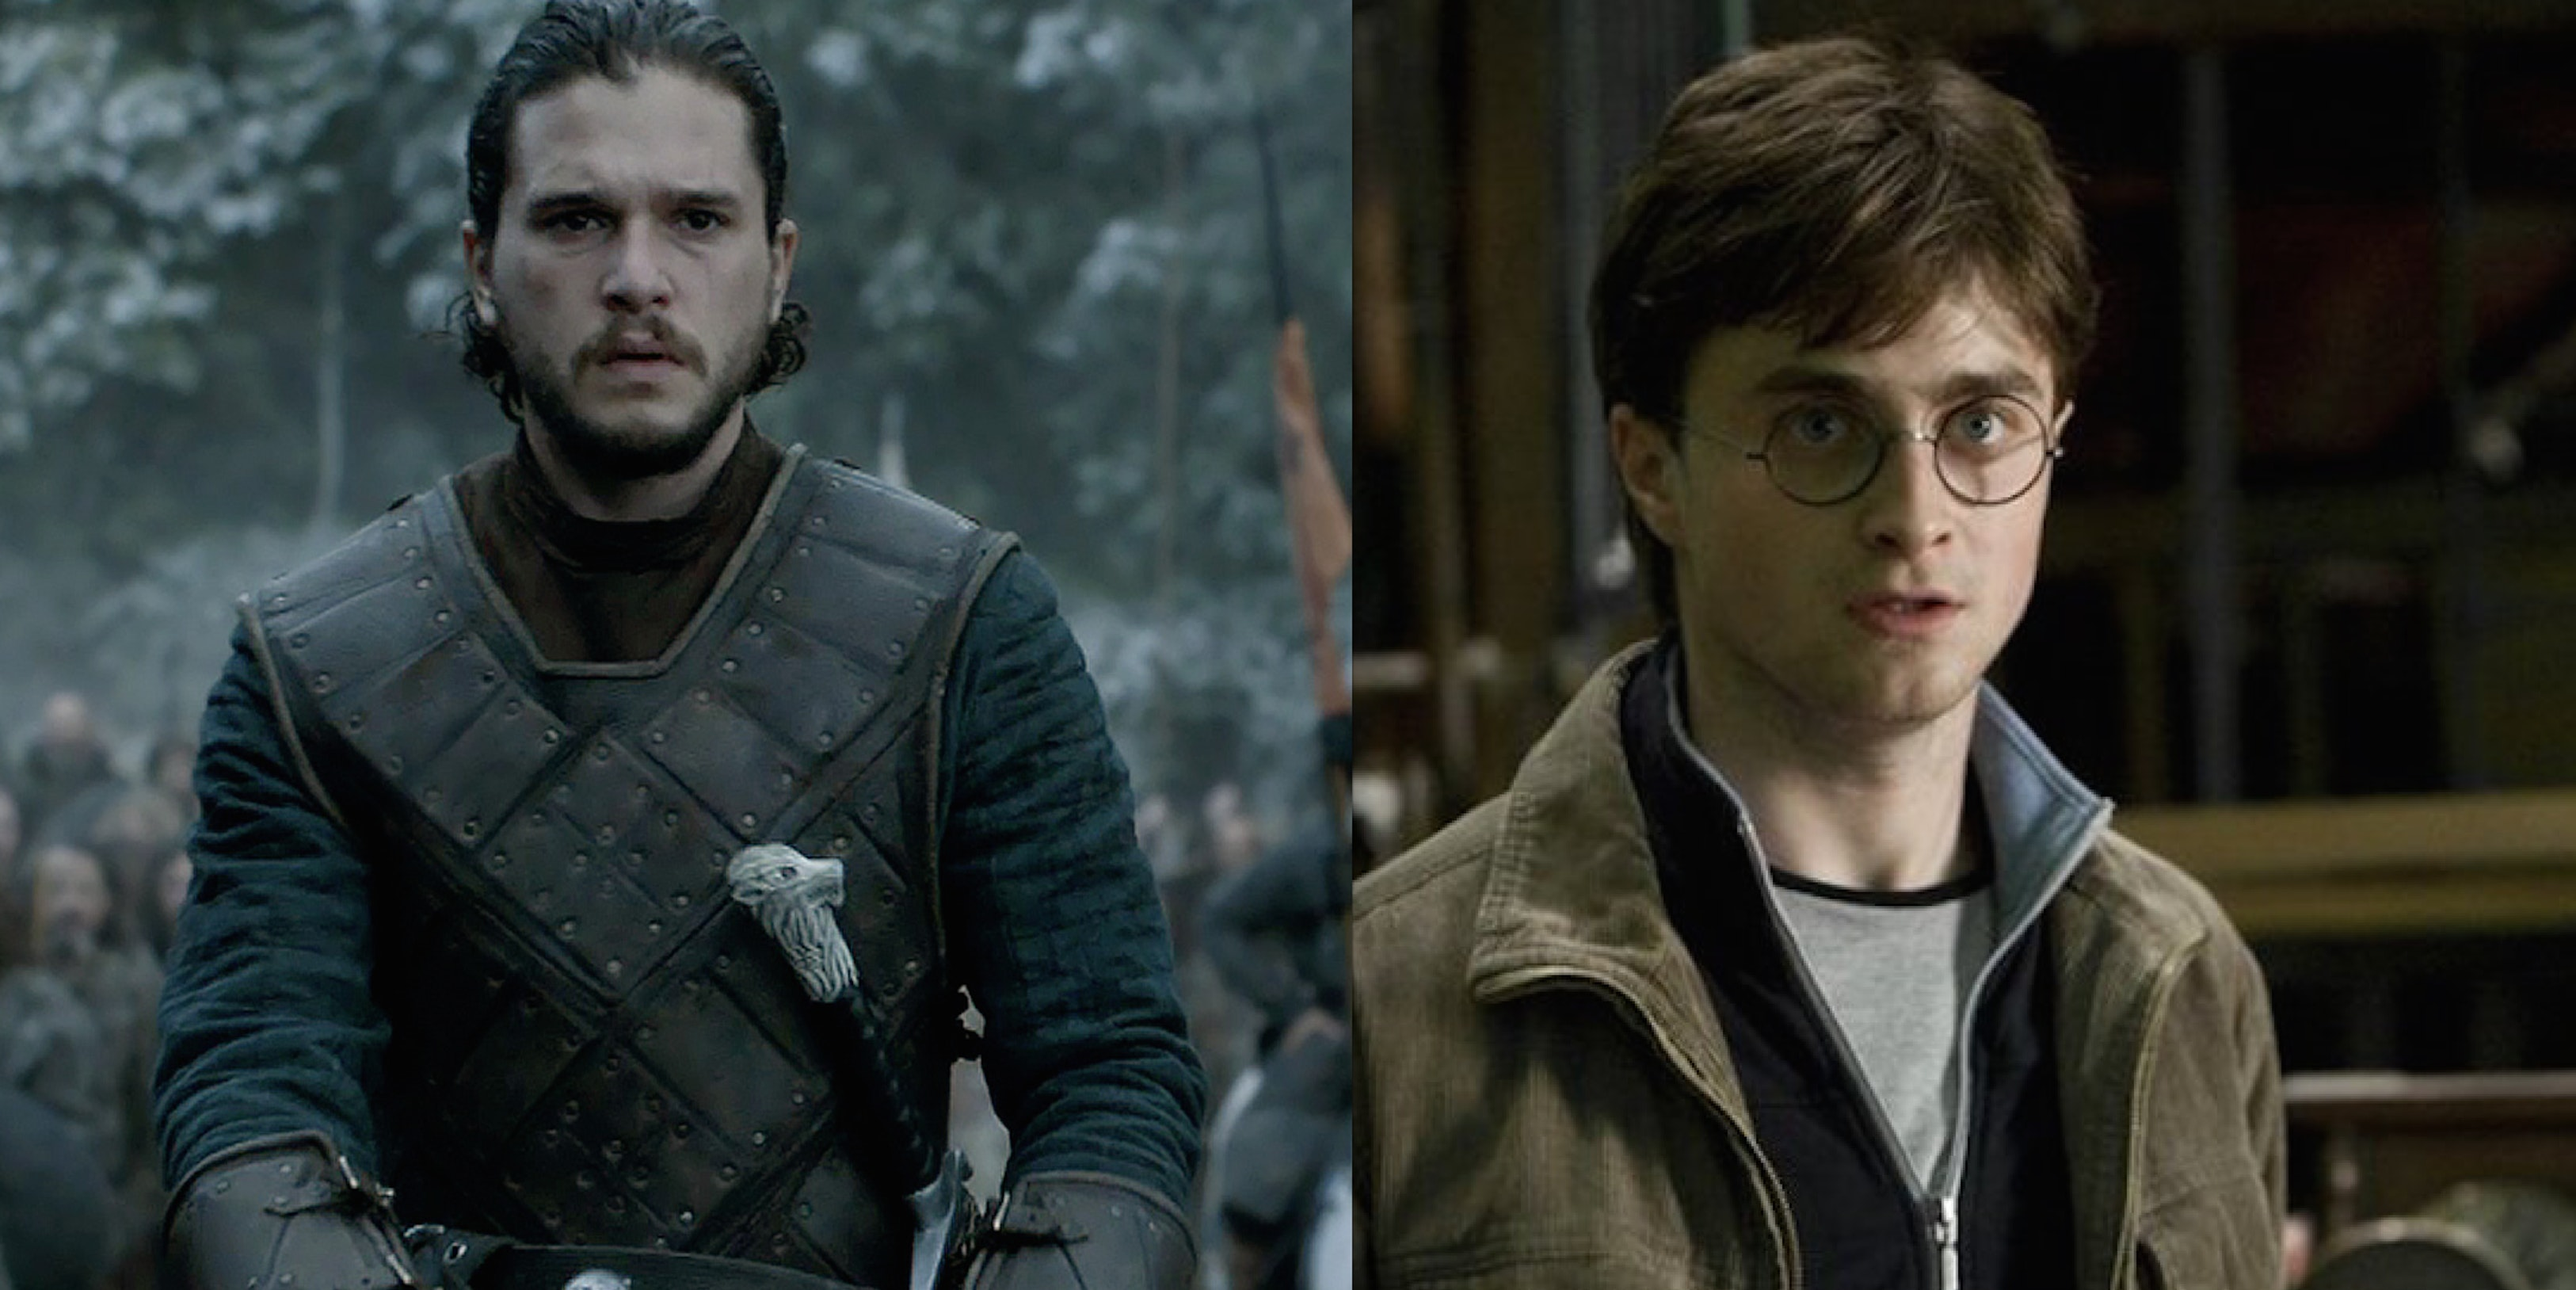 Curious Parallels Between 'Game of Thrones' and 'Harry Potter'